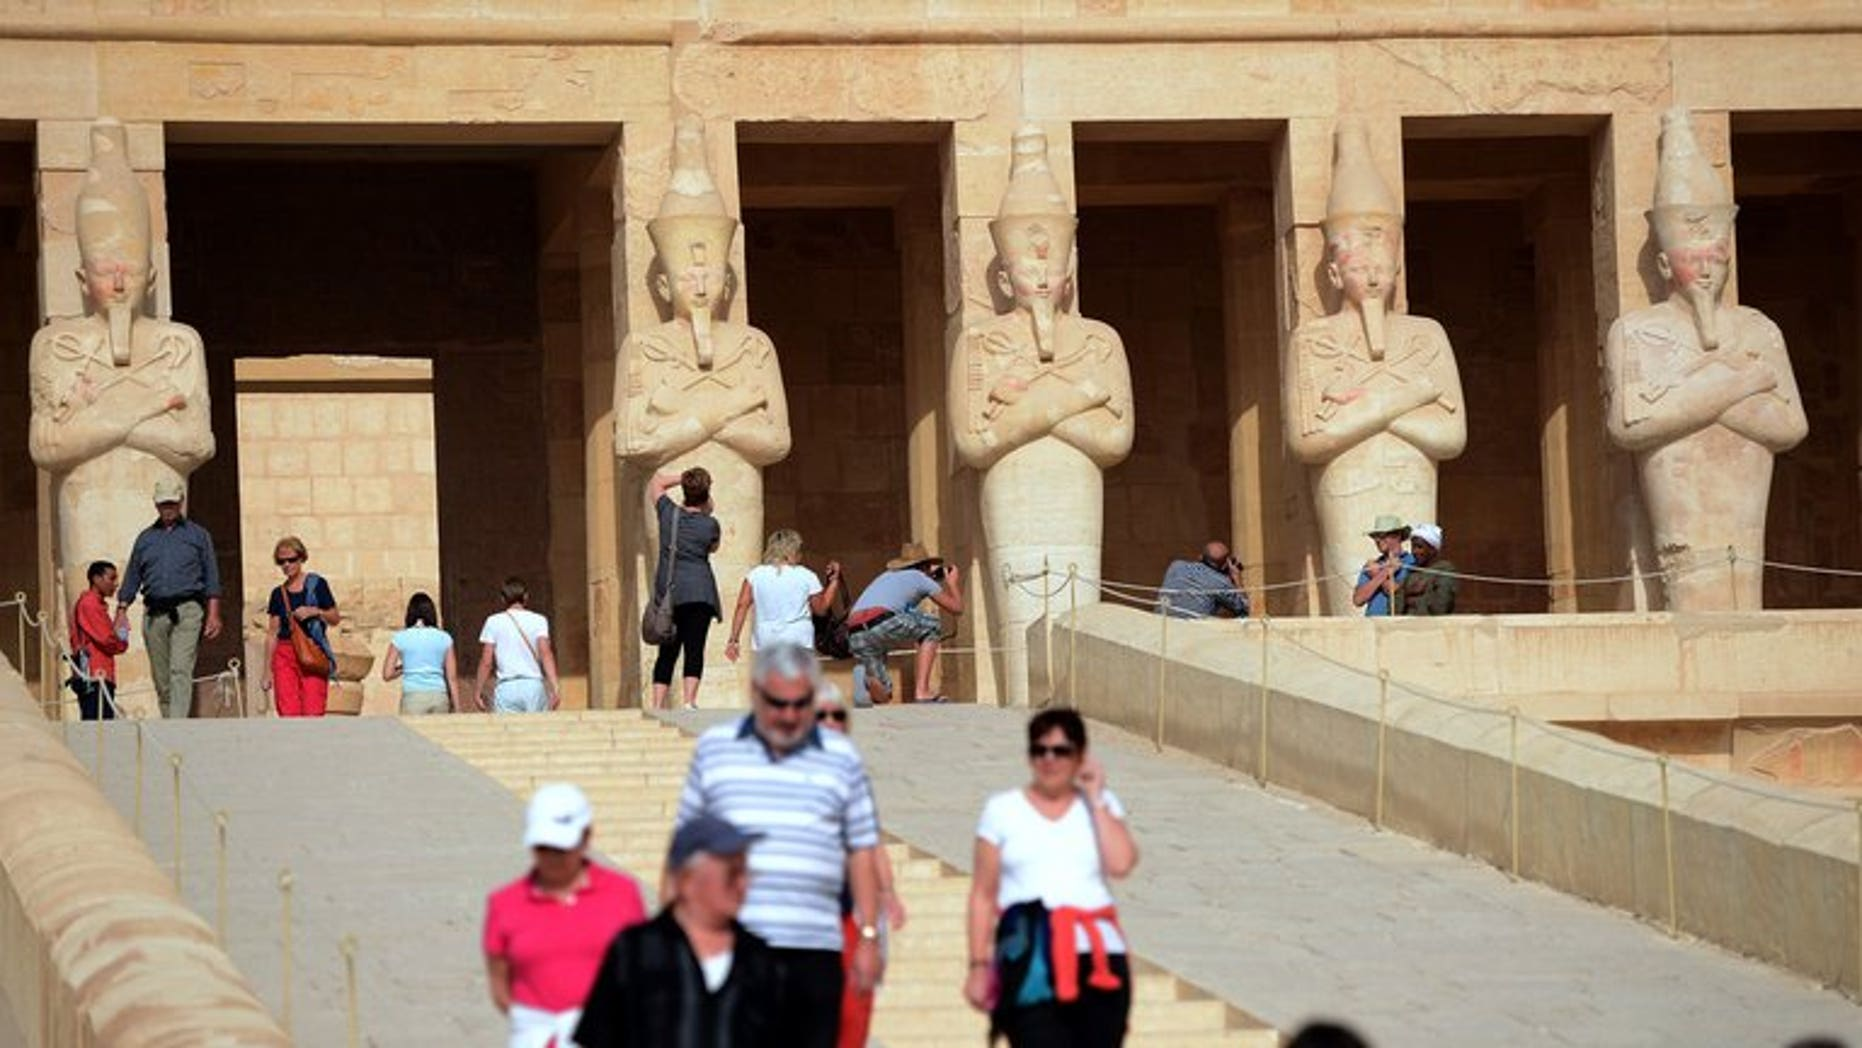 Tourists visit the Temple of Hatshepsut on February 27, 2013, in Egypt's ancient temple city of Luxor. Egypt's Tourism Minister Hesham Zazou was back at work on Monday after the newly appointed Islamist governor of Luxor quit following an outcry over his appointment to the post.